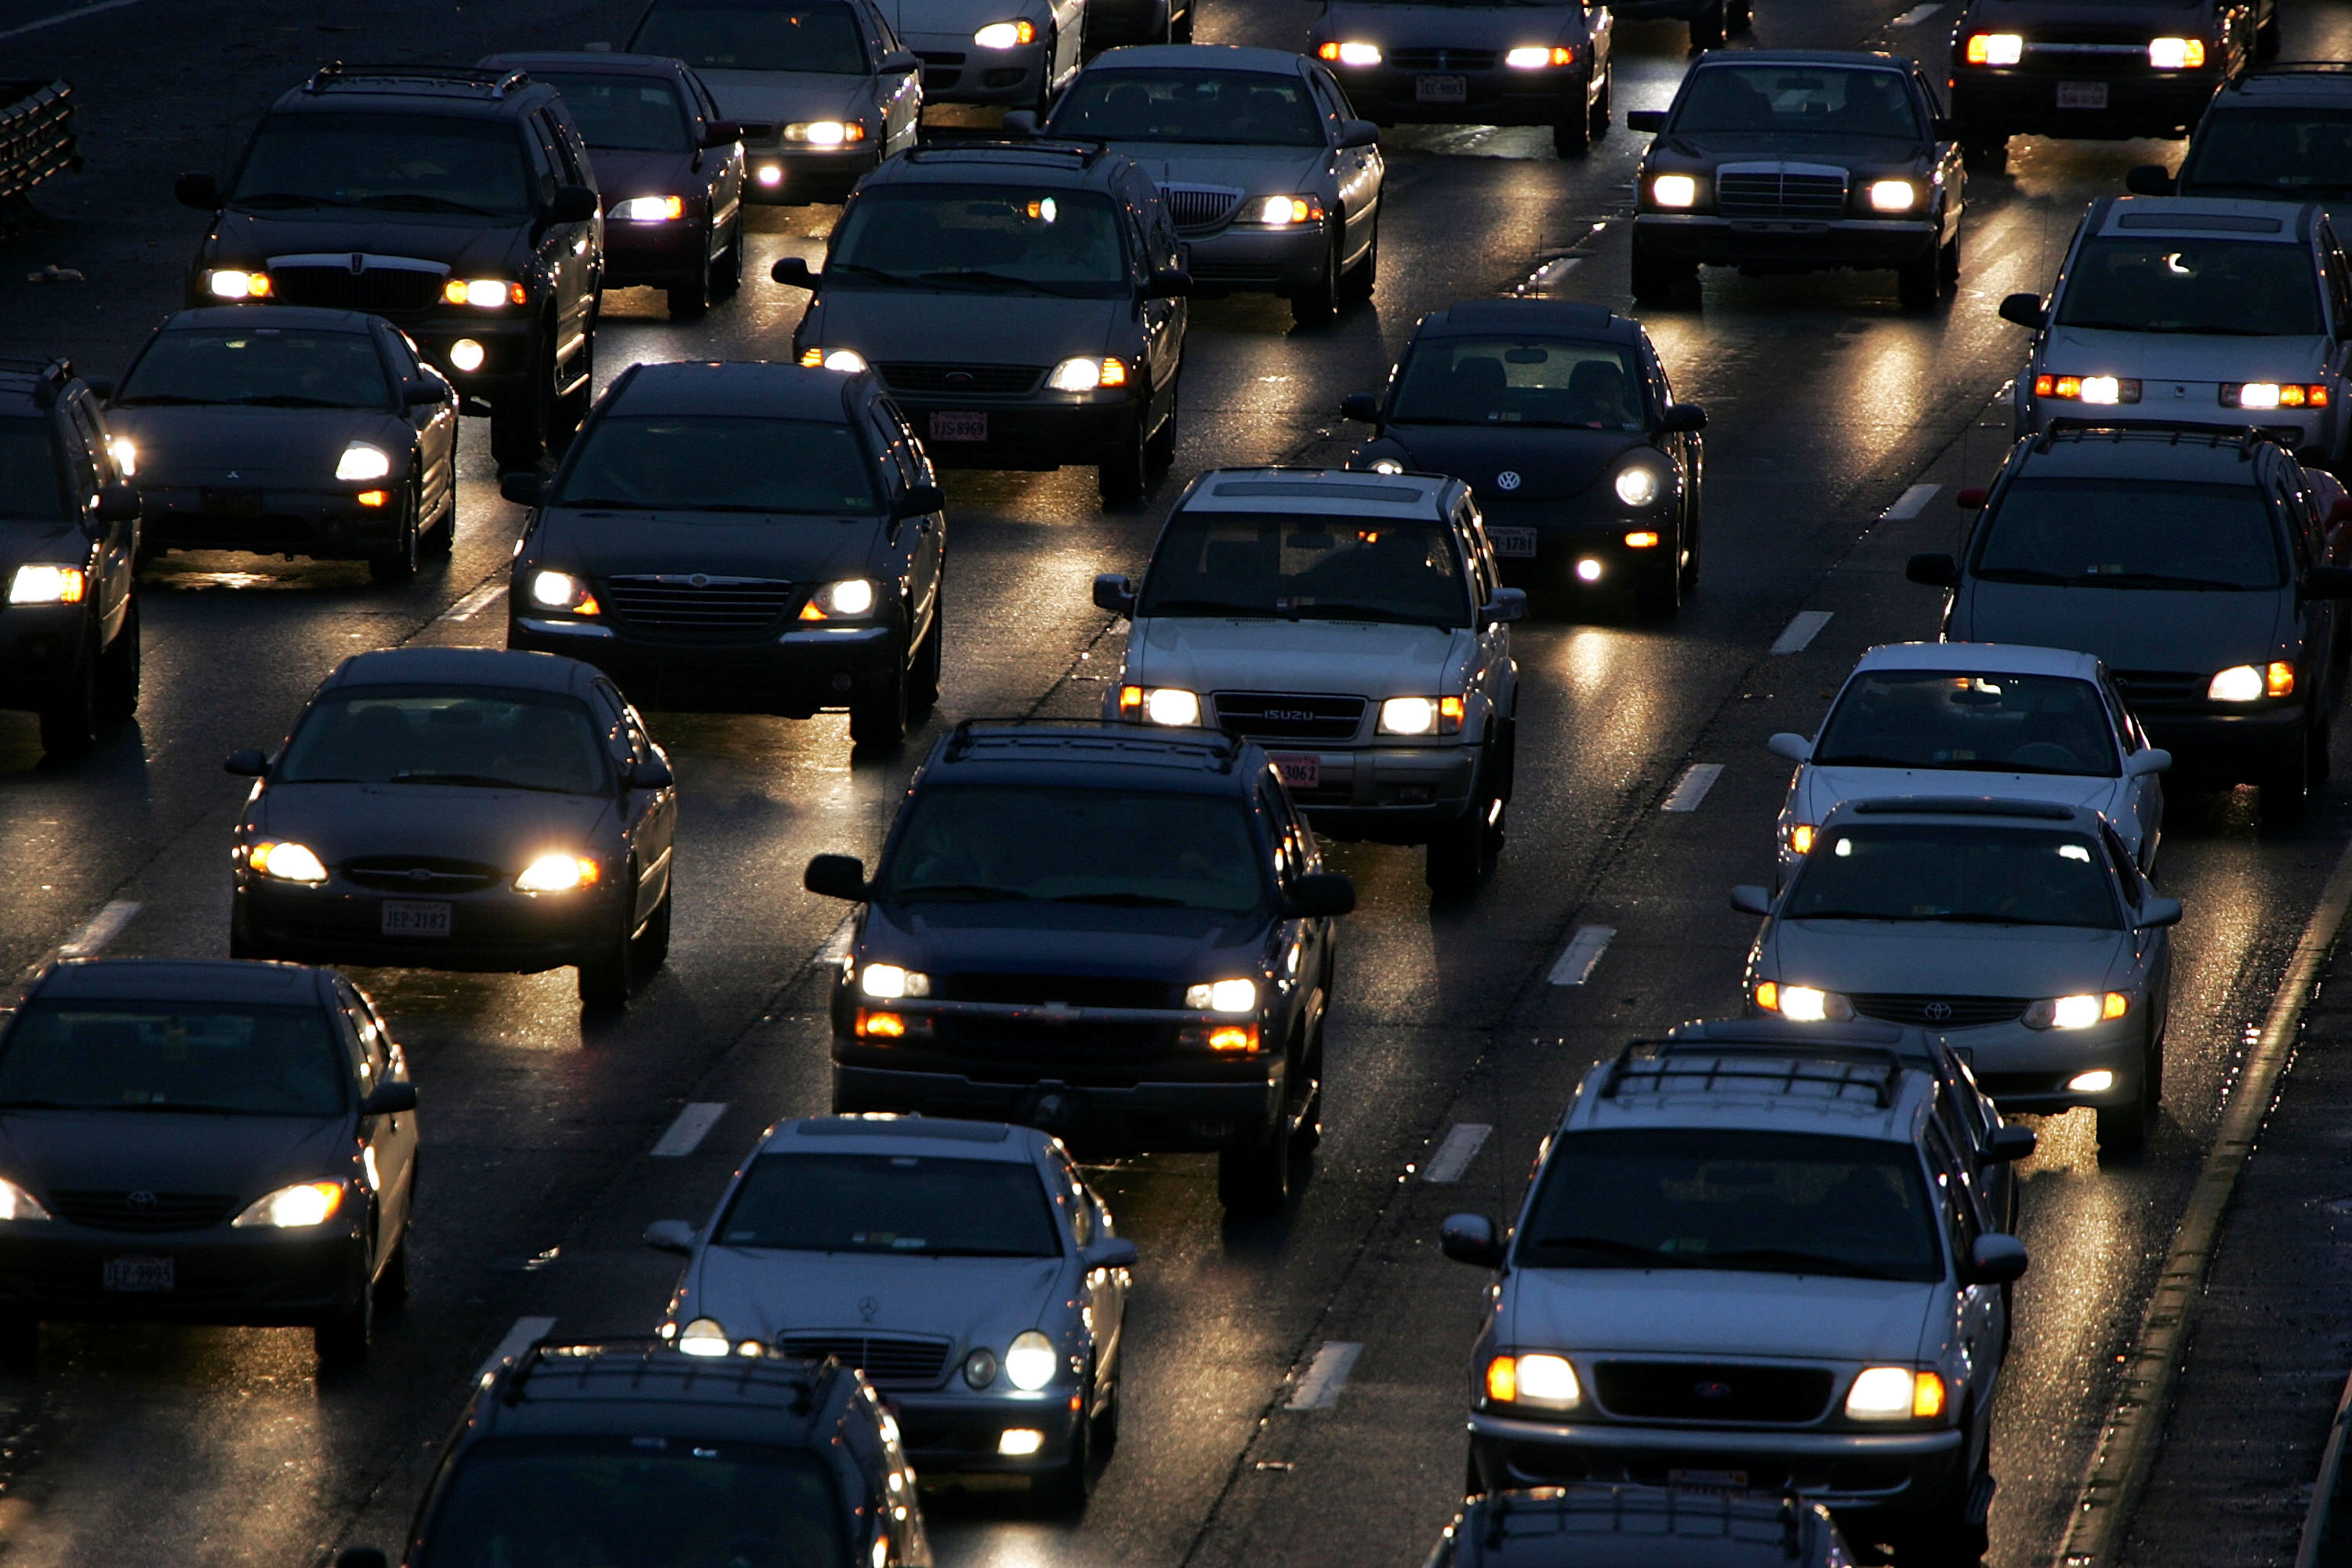 D.C. Thanksgiving traffic ranked 2nd-worst nationwide